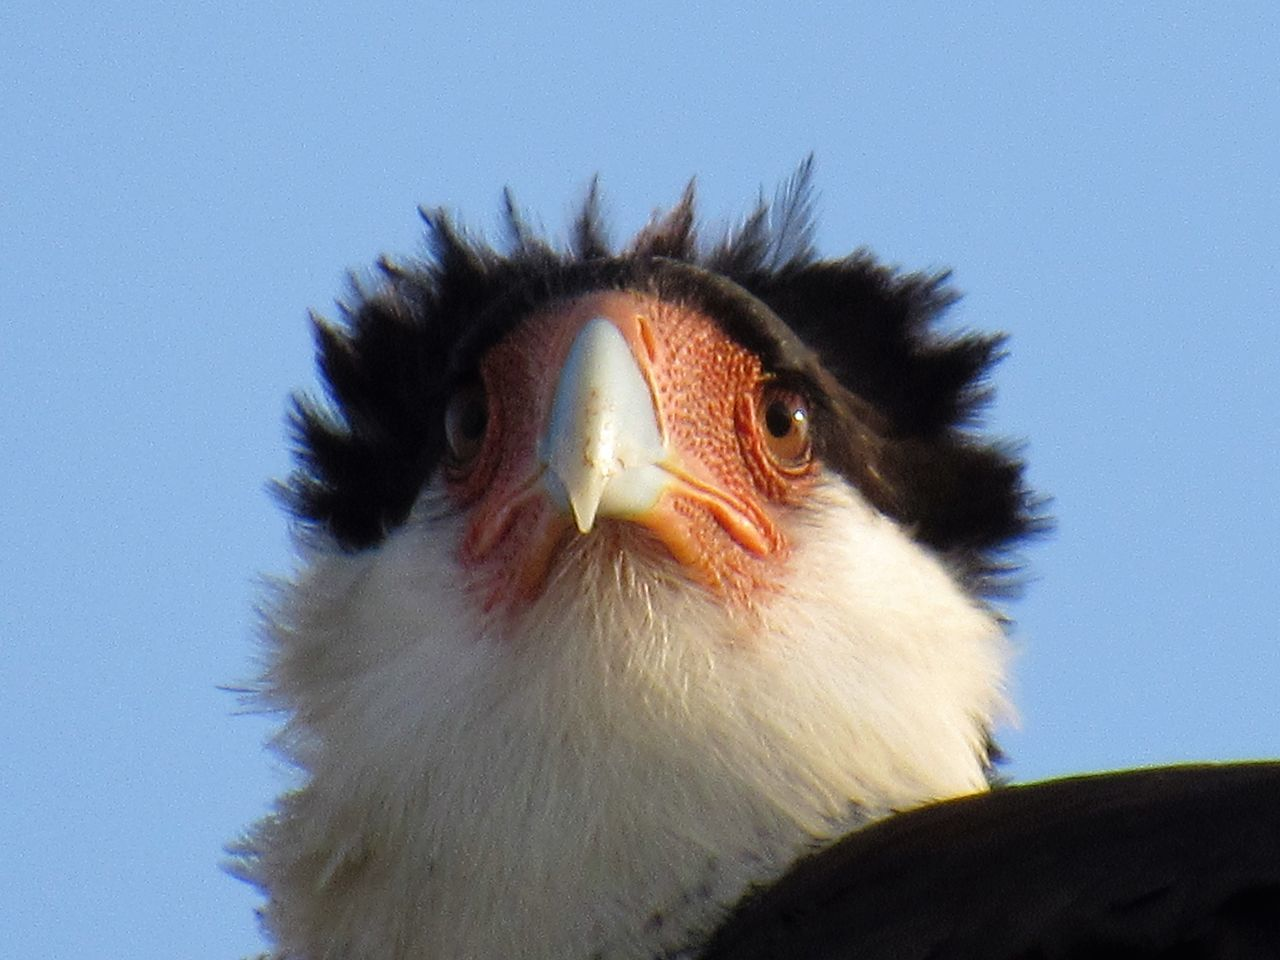 Crested Caracara Bare Skin Big Bird Black And White Fish Eater Large Bird Meat Eater Orange Color Tropical Falcon Windy Day